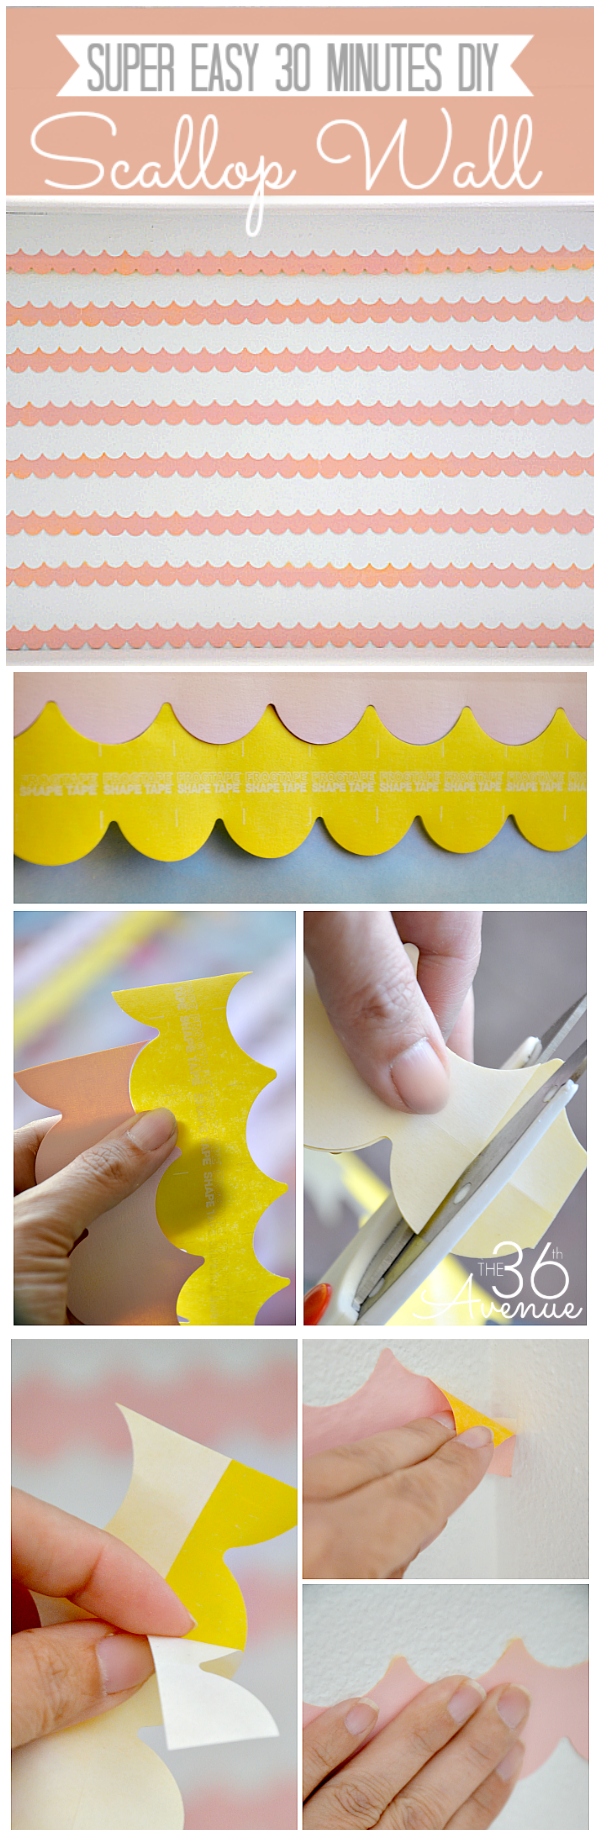 30 minutes DIY Scallop Wall... Tutorial #Frogtape #shapetape